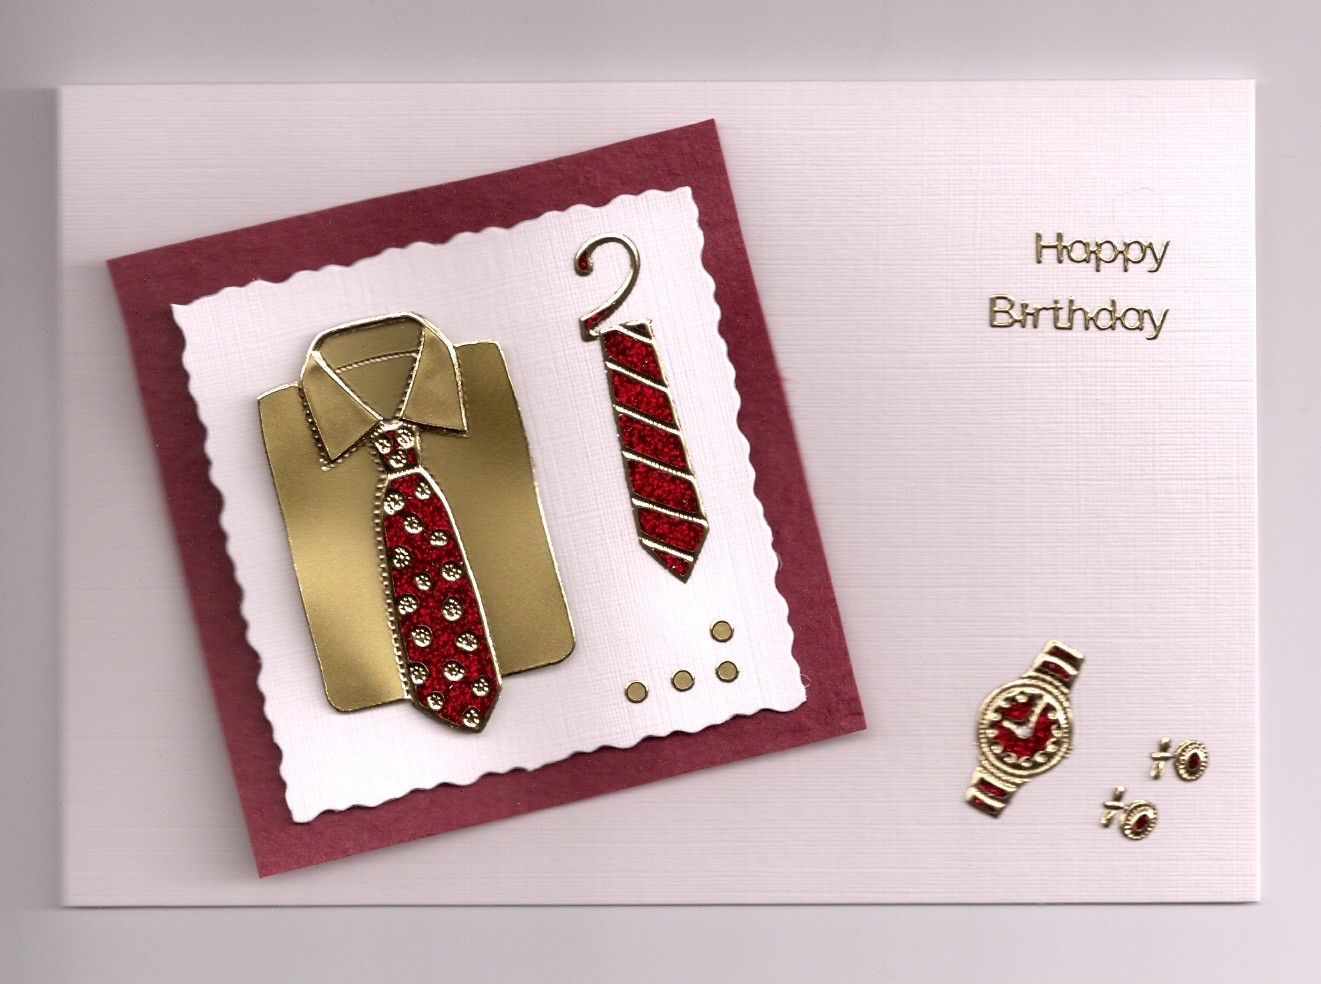 Birthday Cards For Men ~ Handmade birthday cards for men let s celebrate